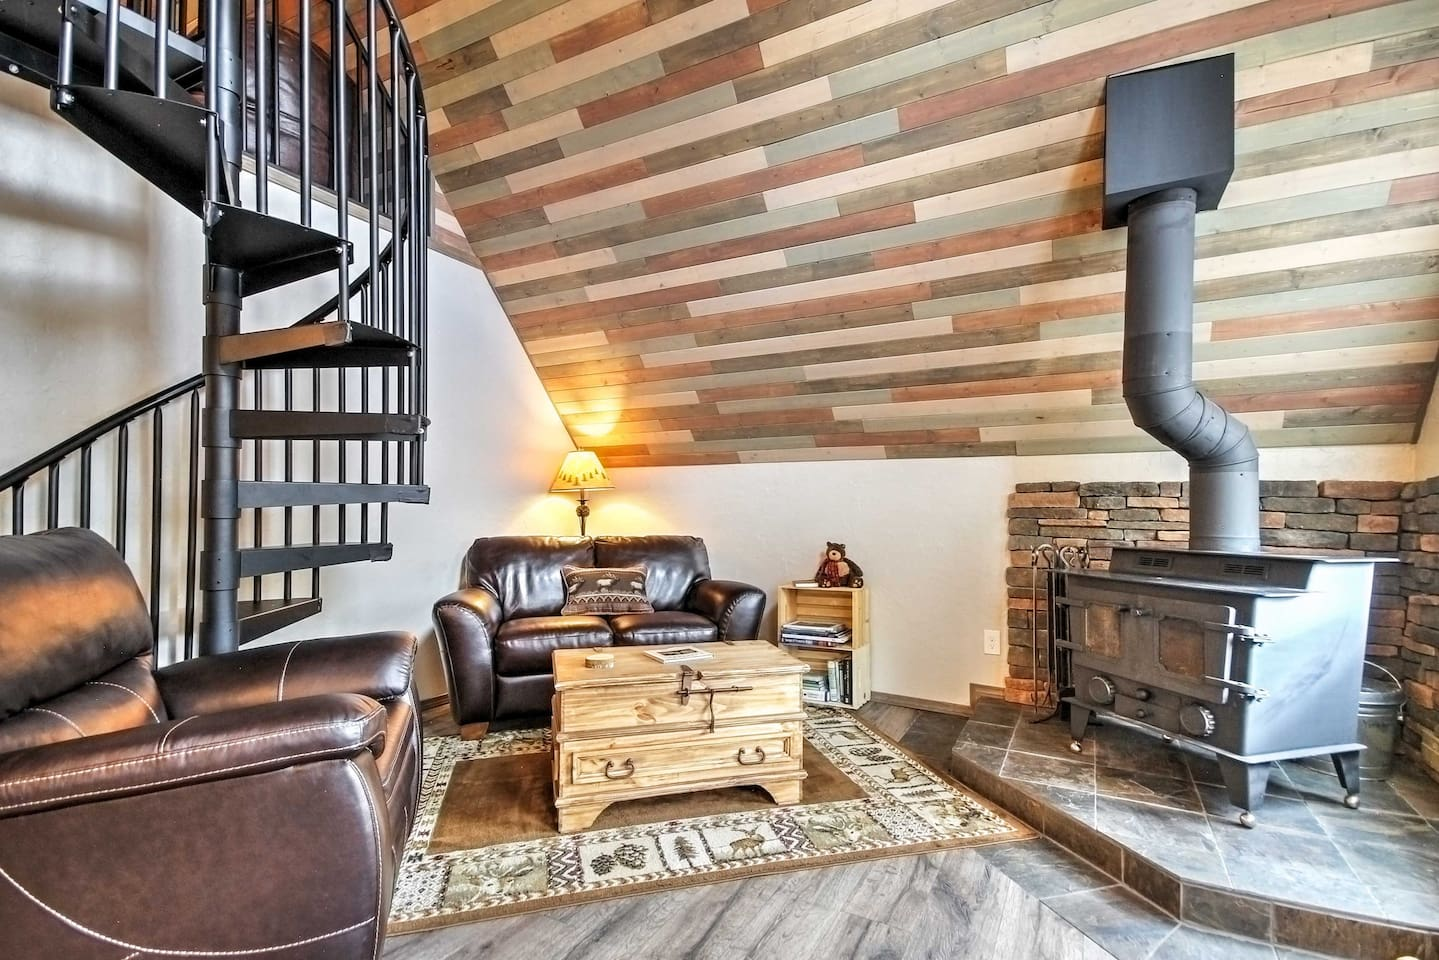 This 1-bed vacation rental is the perfect spot for your Cripple Creek retreat!